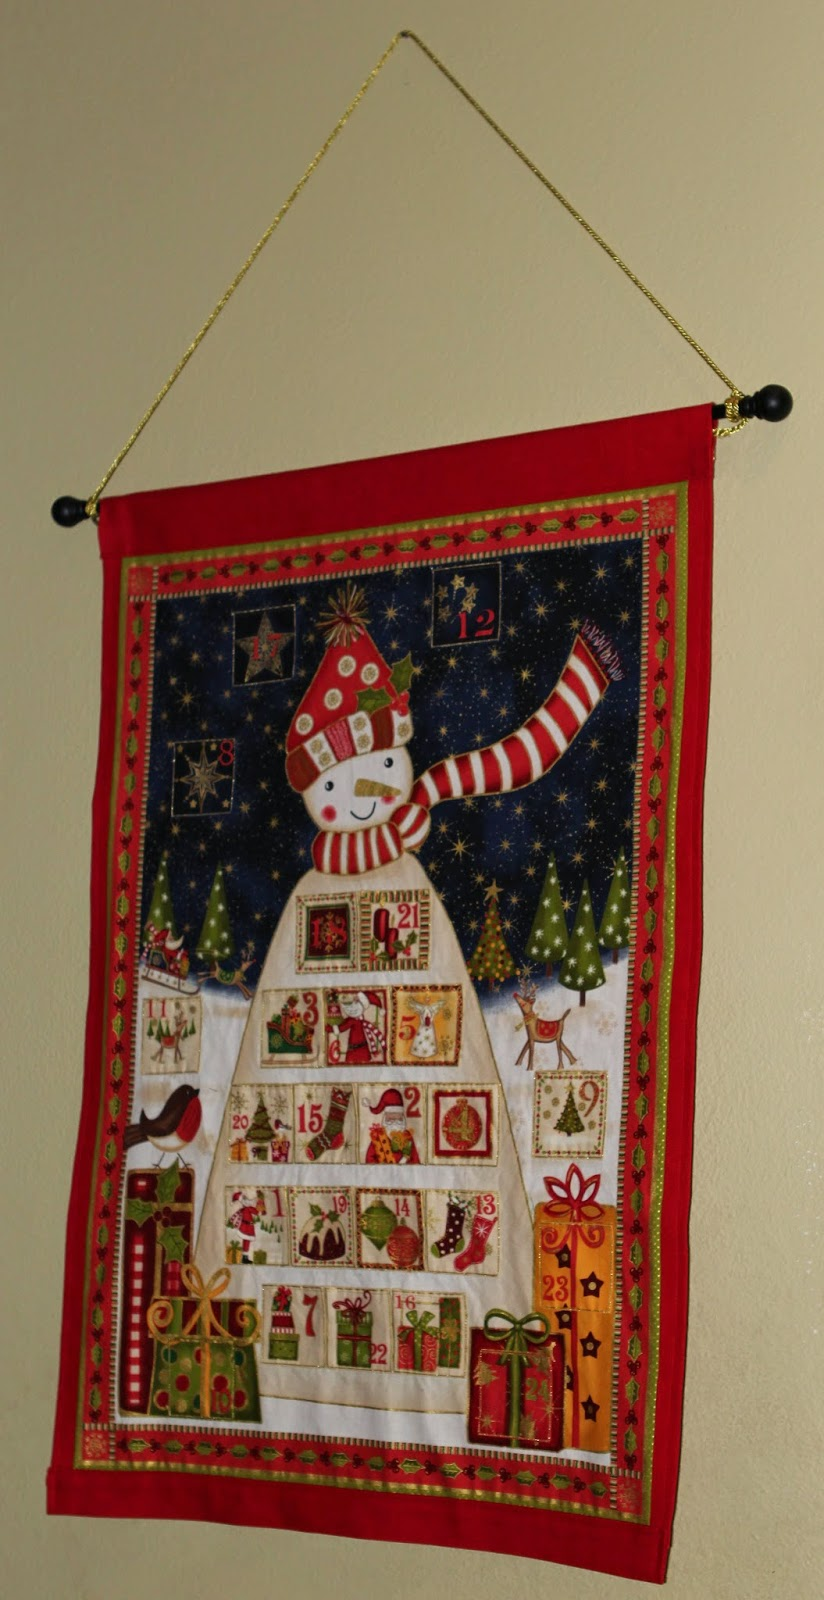 Diy Sewing Advent Calendar : Stitching it up diy fabric advent calendar